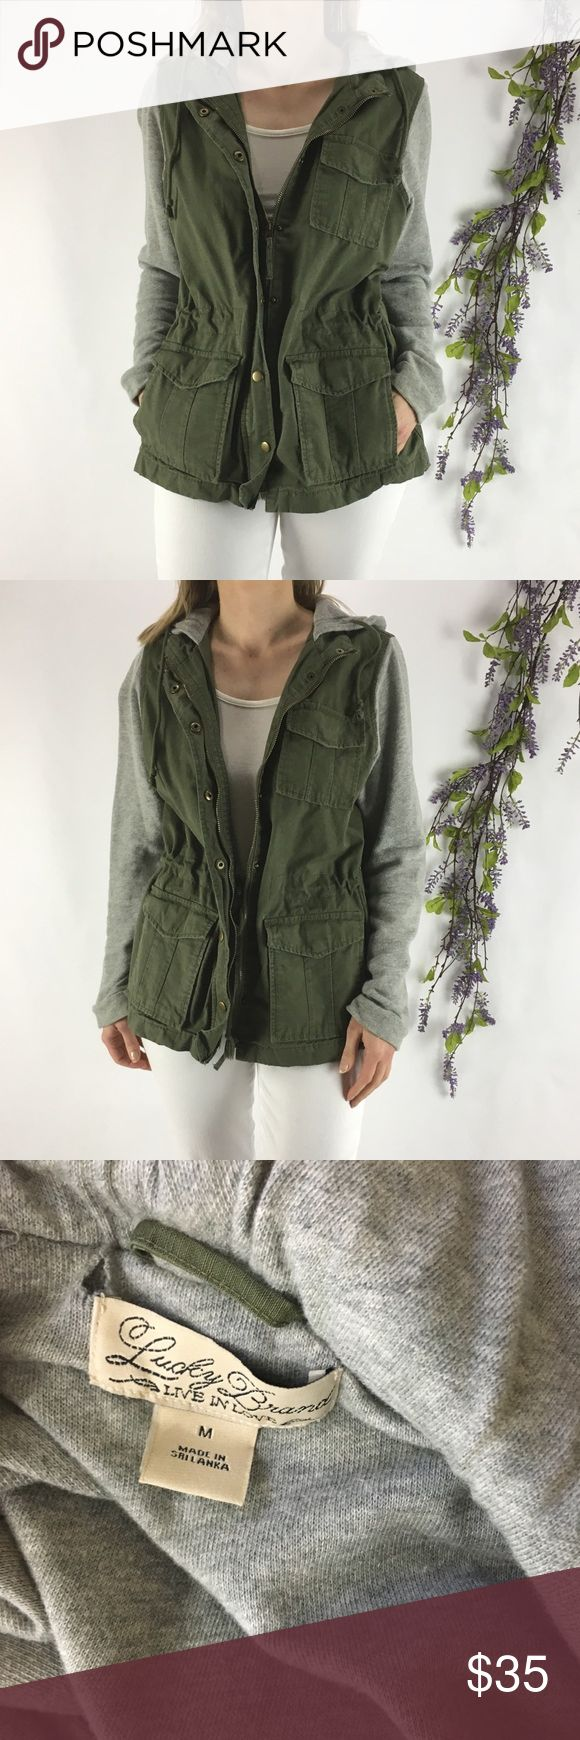 "LUCKY BRAND Green Military Jacket w/ Terry sleeves LUCKY BRAND Green/Gray 100% Cotton French Terry Sleeves/Hood Military Jacket  A study in comfy contrast, our French Terry Military jacket combines a cozy fabric with tough details for a jacket you'll want to wear all around town (plus we're loving the longer silhouette and the French terry hood).  Sleeve Style: Long  Material: 100% Cotton  UNSTRETCHED MEASUREMENTS:  Armpit to armpit 19""  Length 25"" Lucky Brand Jackets & Coats Utility Jackets"